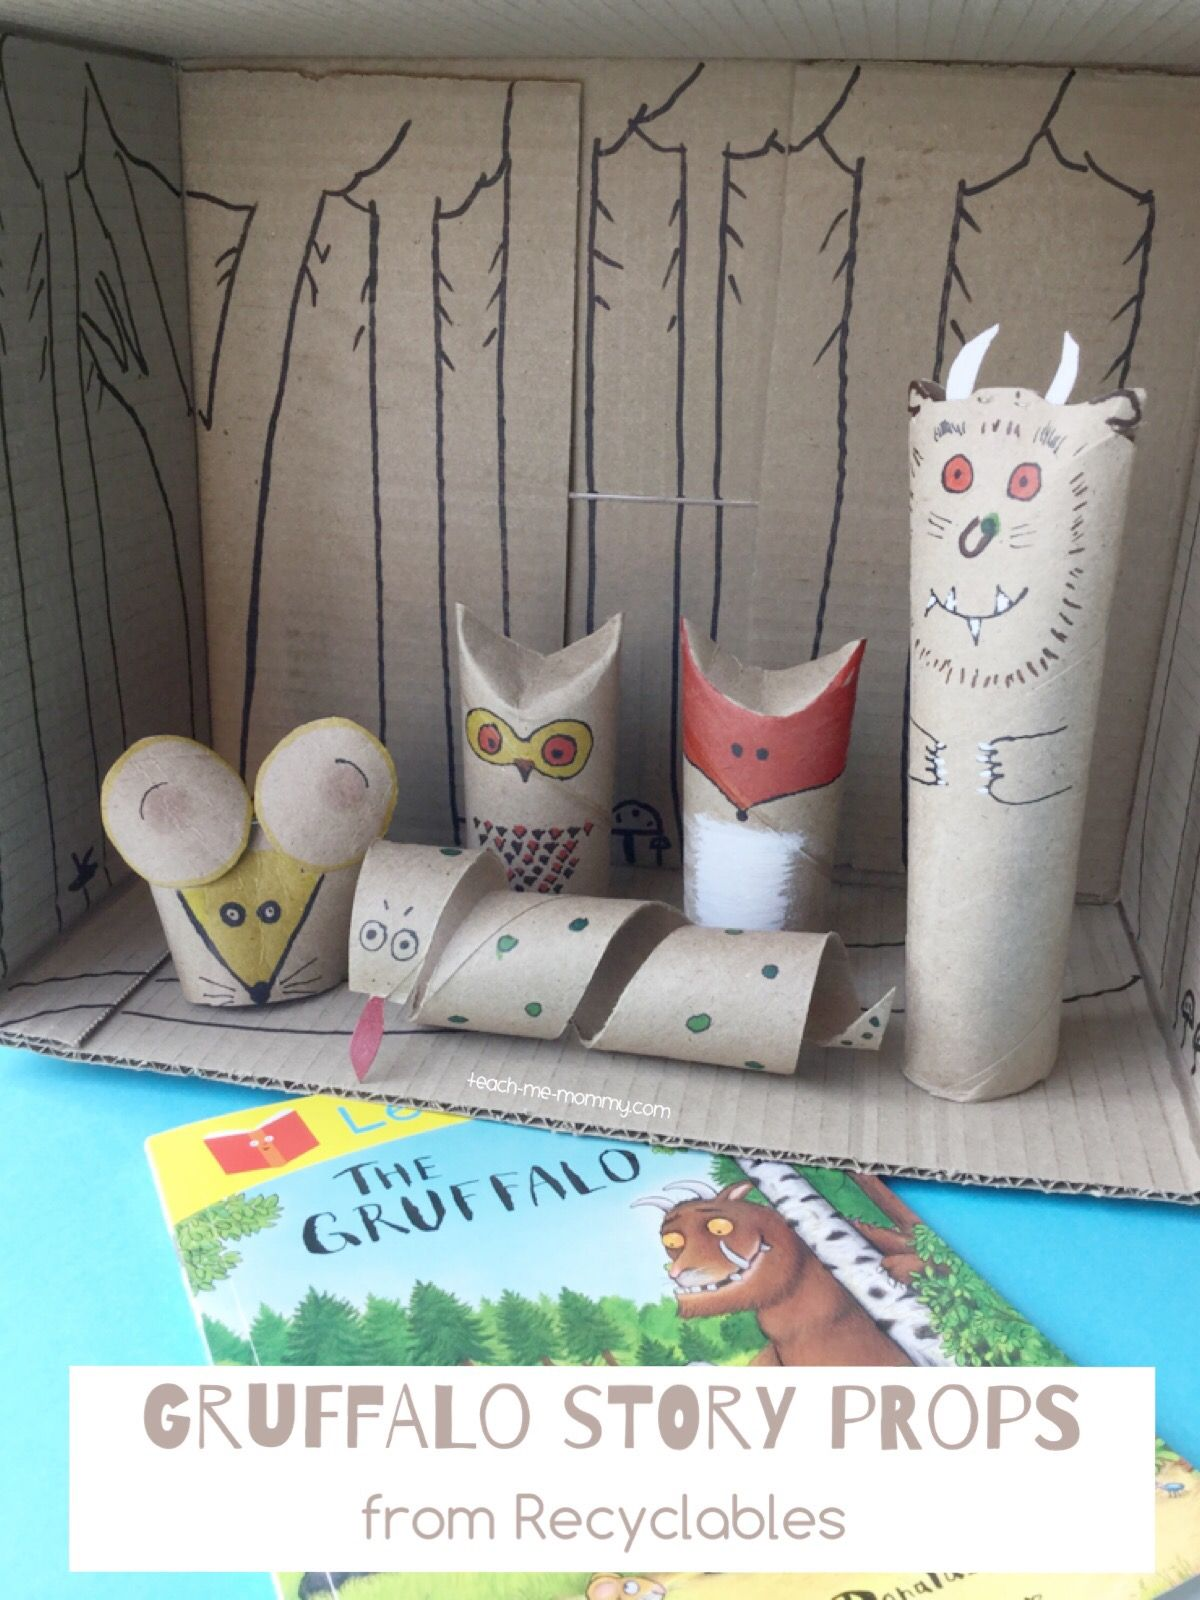 Gruffalo Props From Recyclables